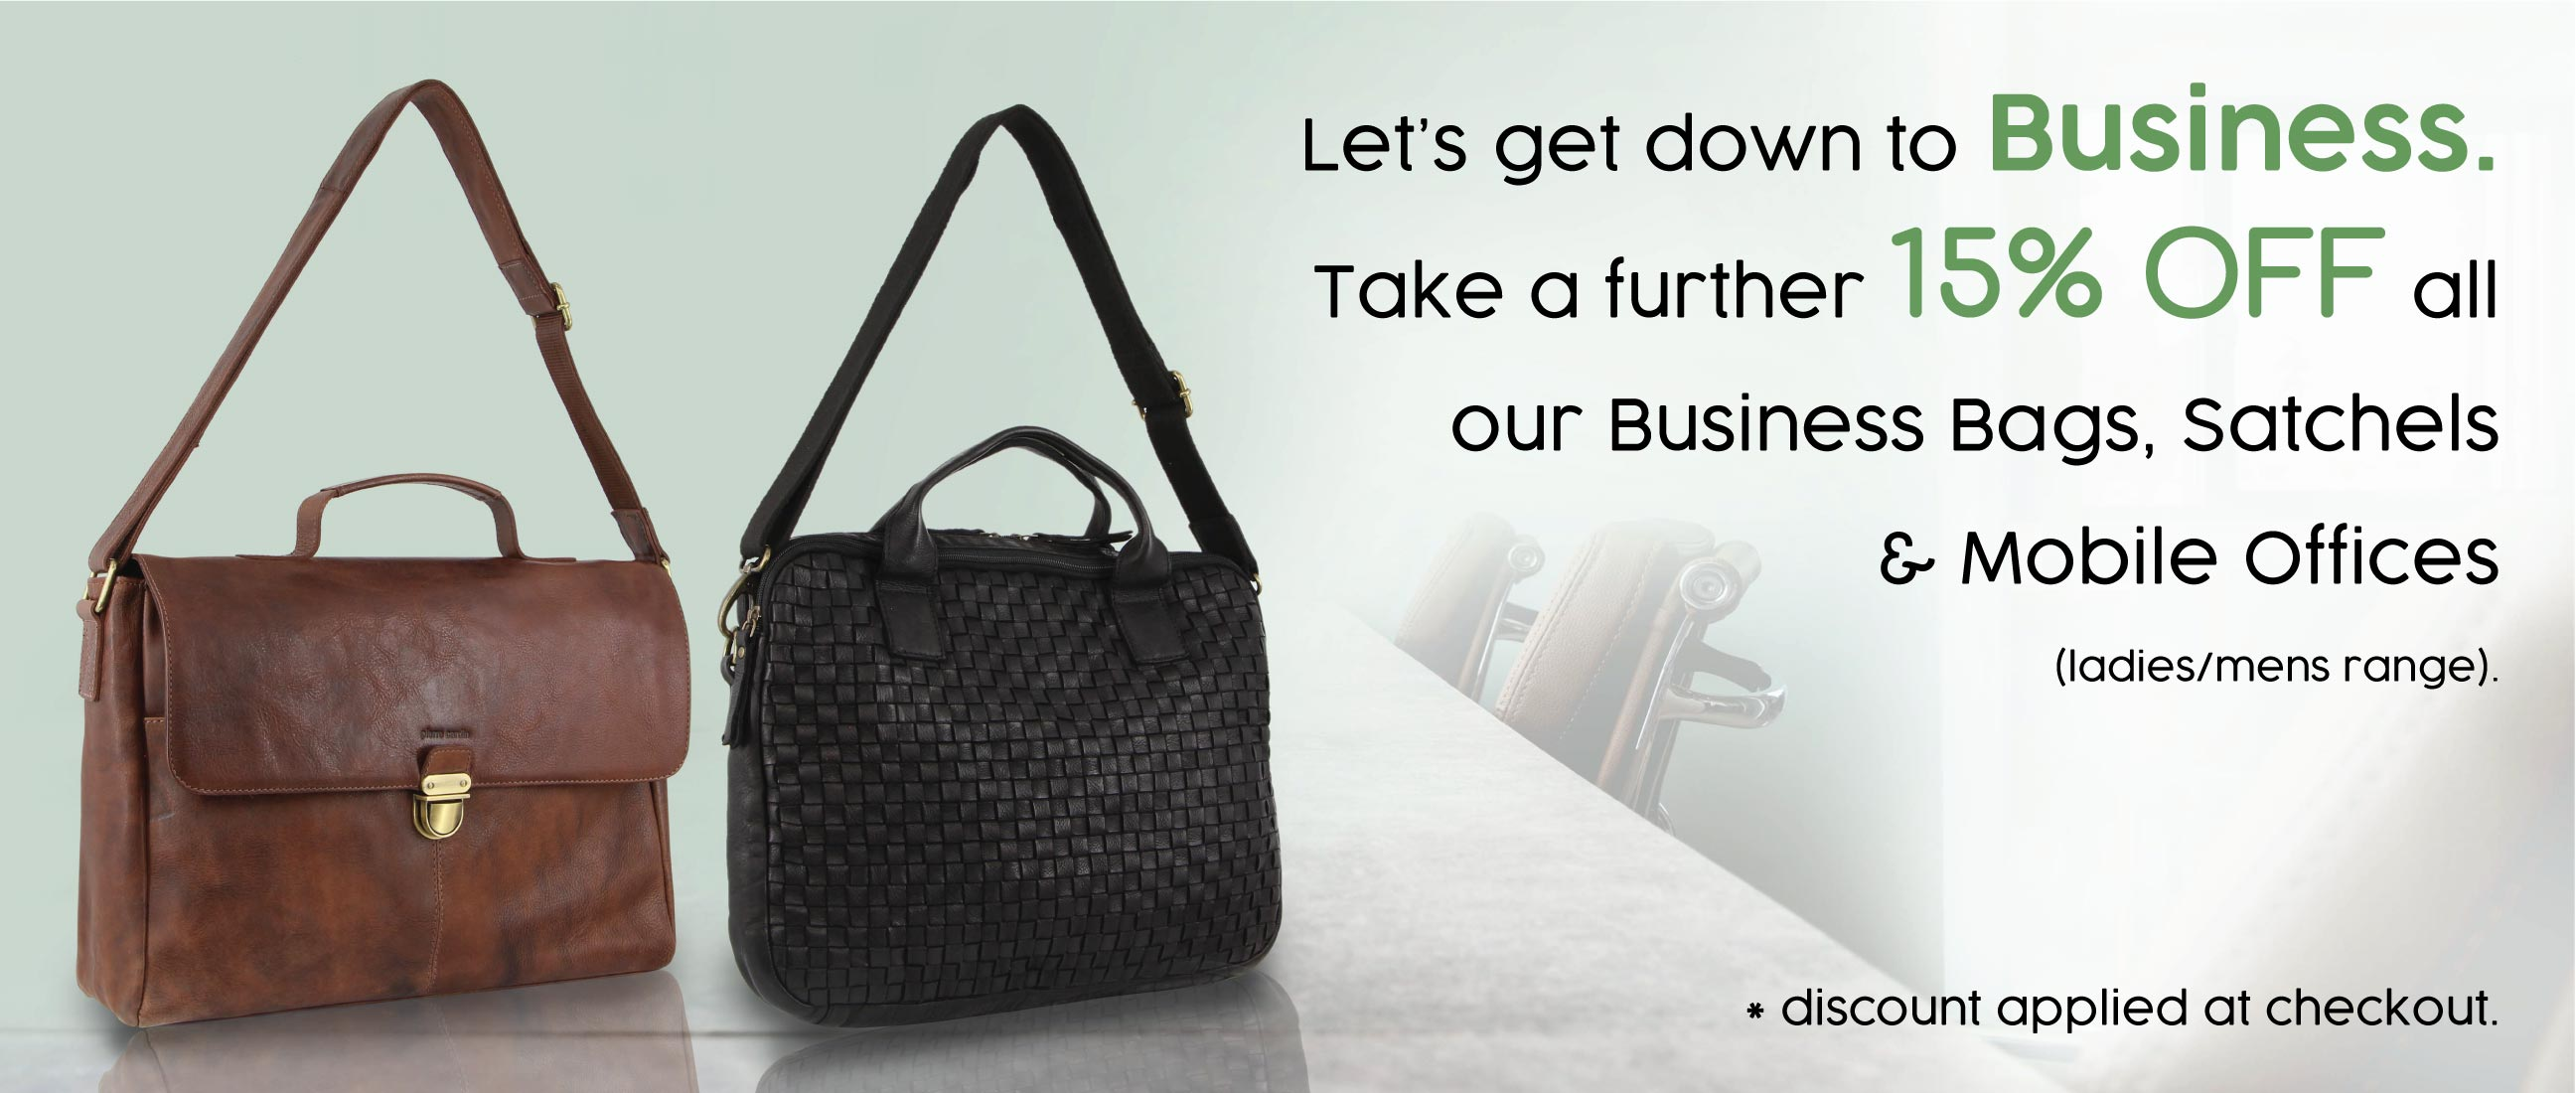 let-s-get-down-to-business-15-off-wkg-01.jpg